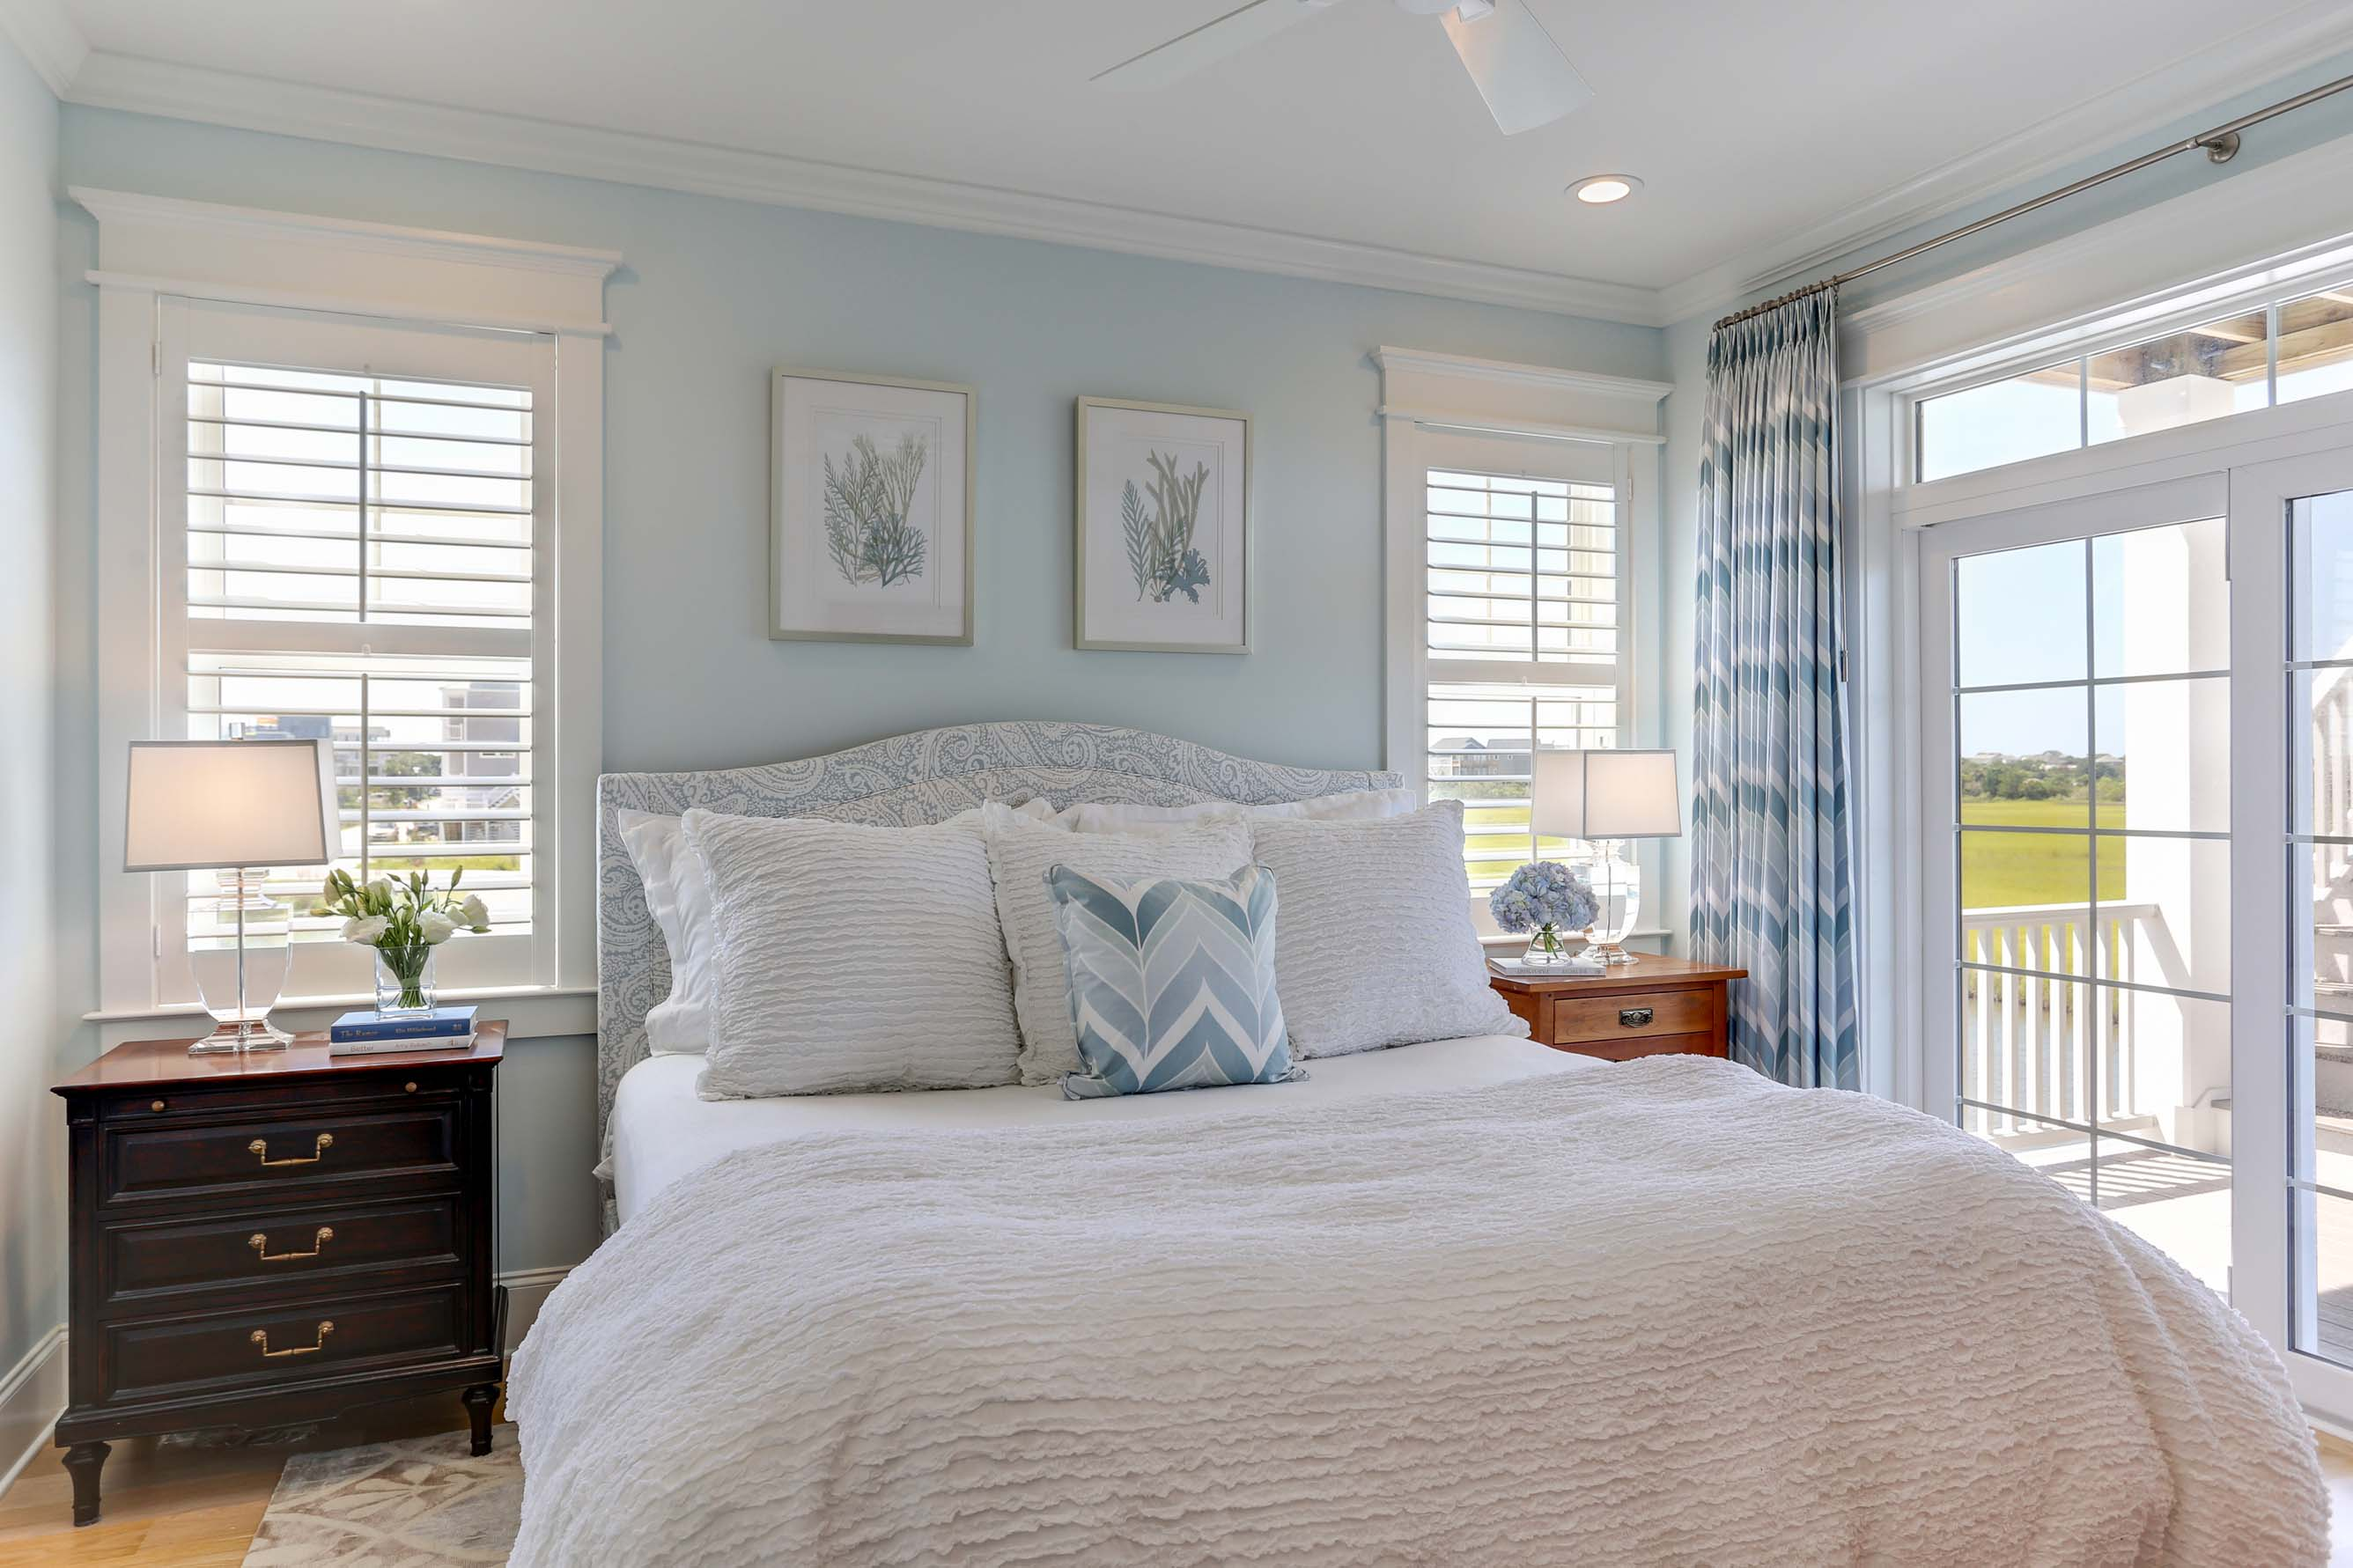 Teal Interior Design, LLC Is Led By Owner And Designer Angela Crittenden,  ASID Located In Wilmington, NC And Raleigh, NC. We Serve The Triangle Area  And ...